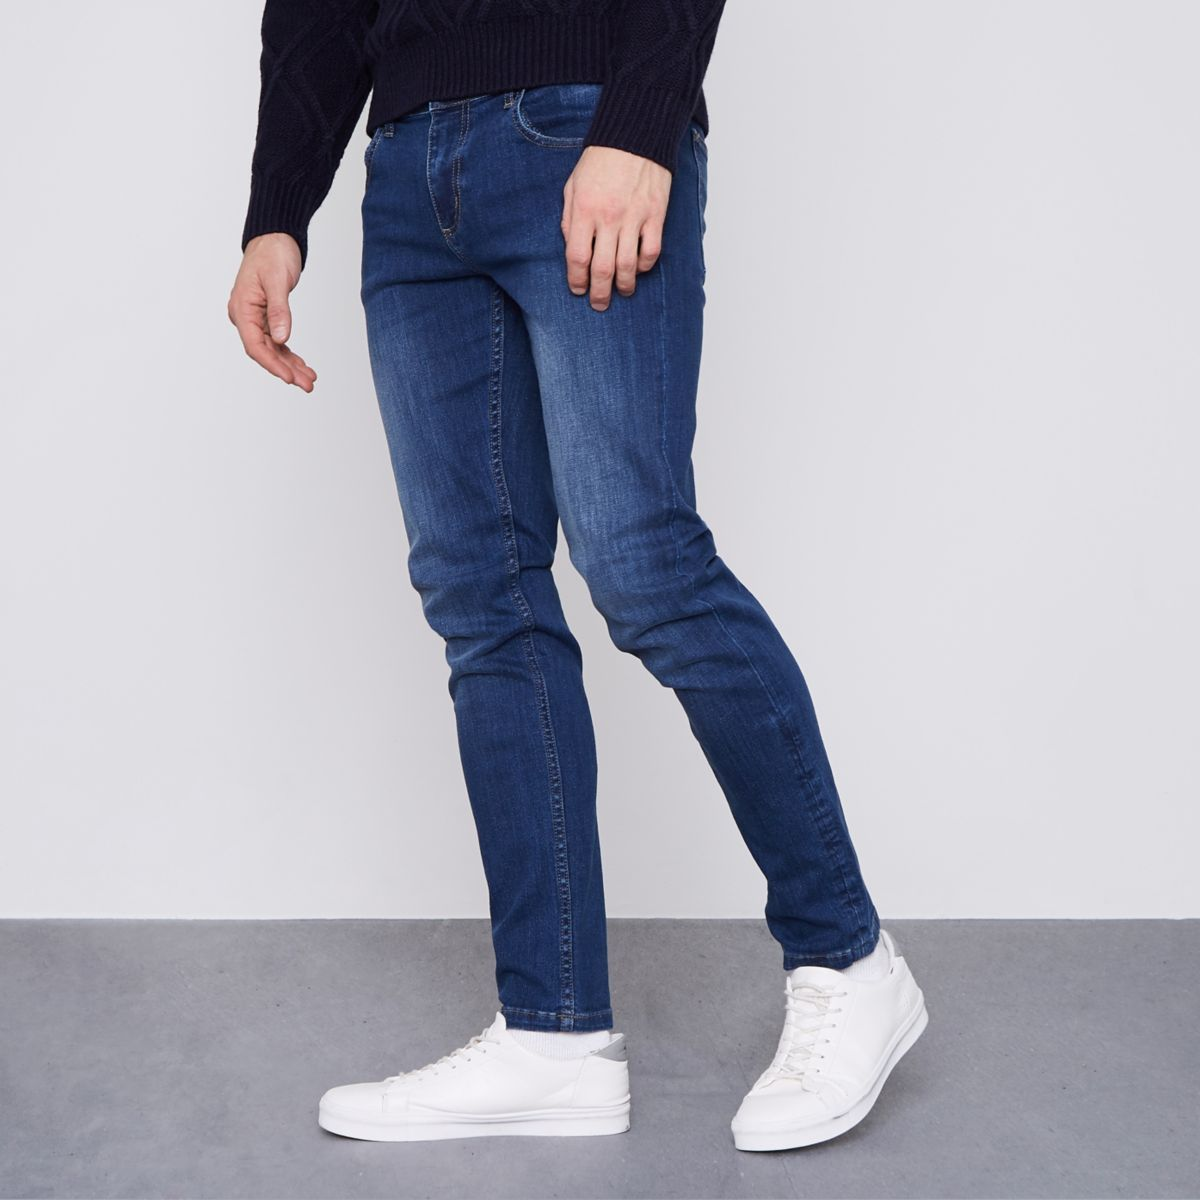 Free Shipping Best Place DENIM - Denim trousers Monkee Genes Outlet Best Place Sale Wide Range Of Free Shipping Visit New Sale 2018 Unisex NHohd7